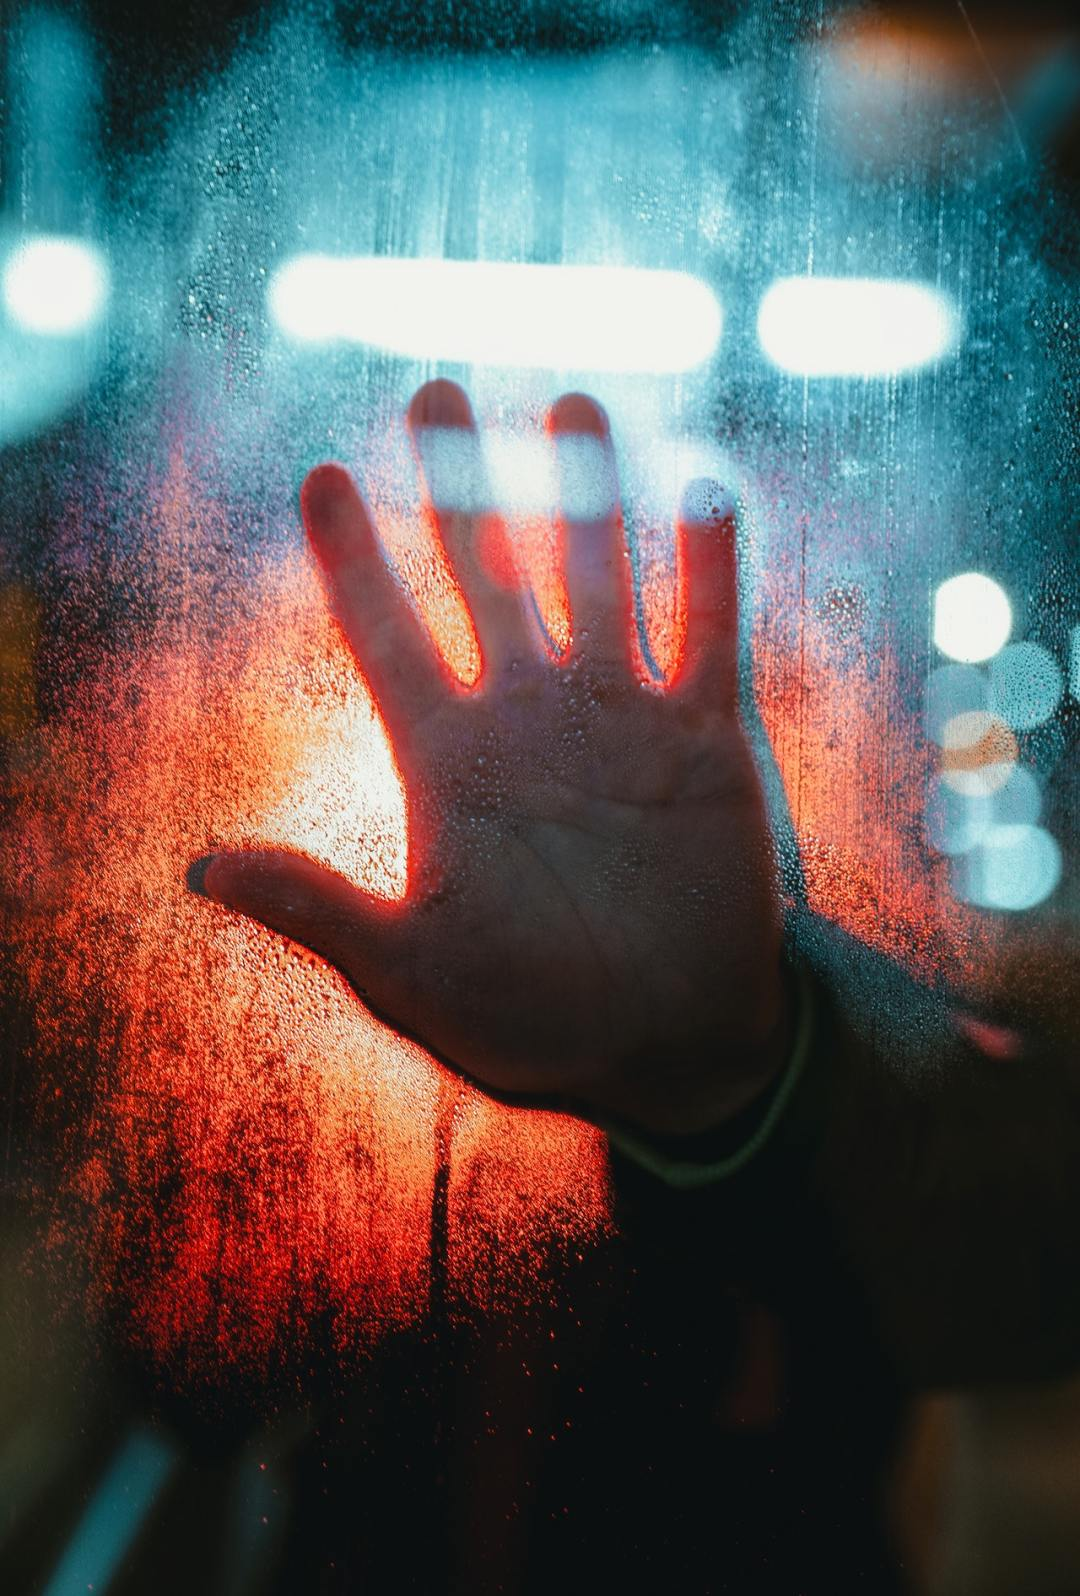 misty hand pressing against a glass